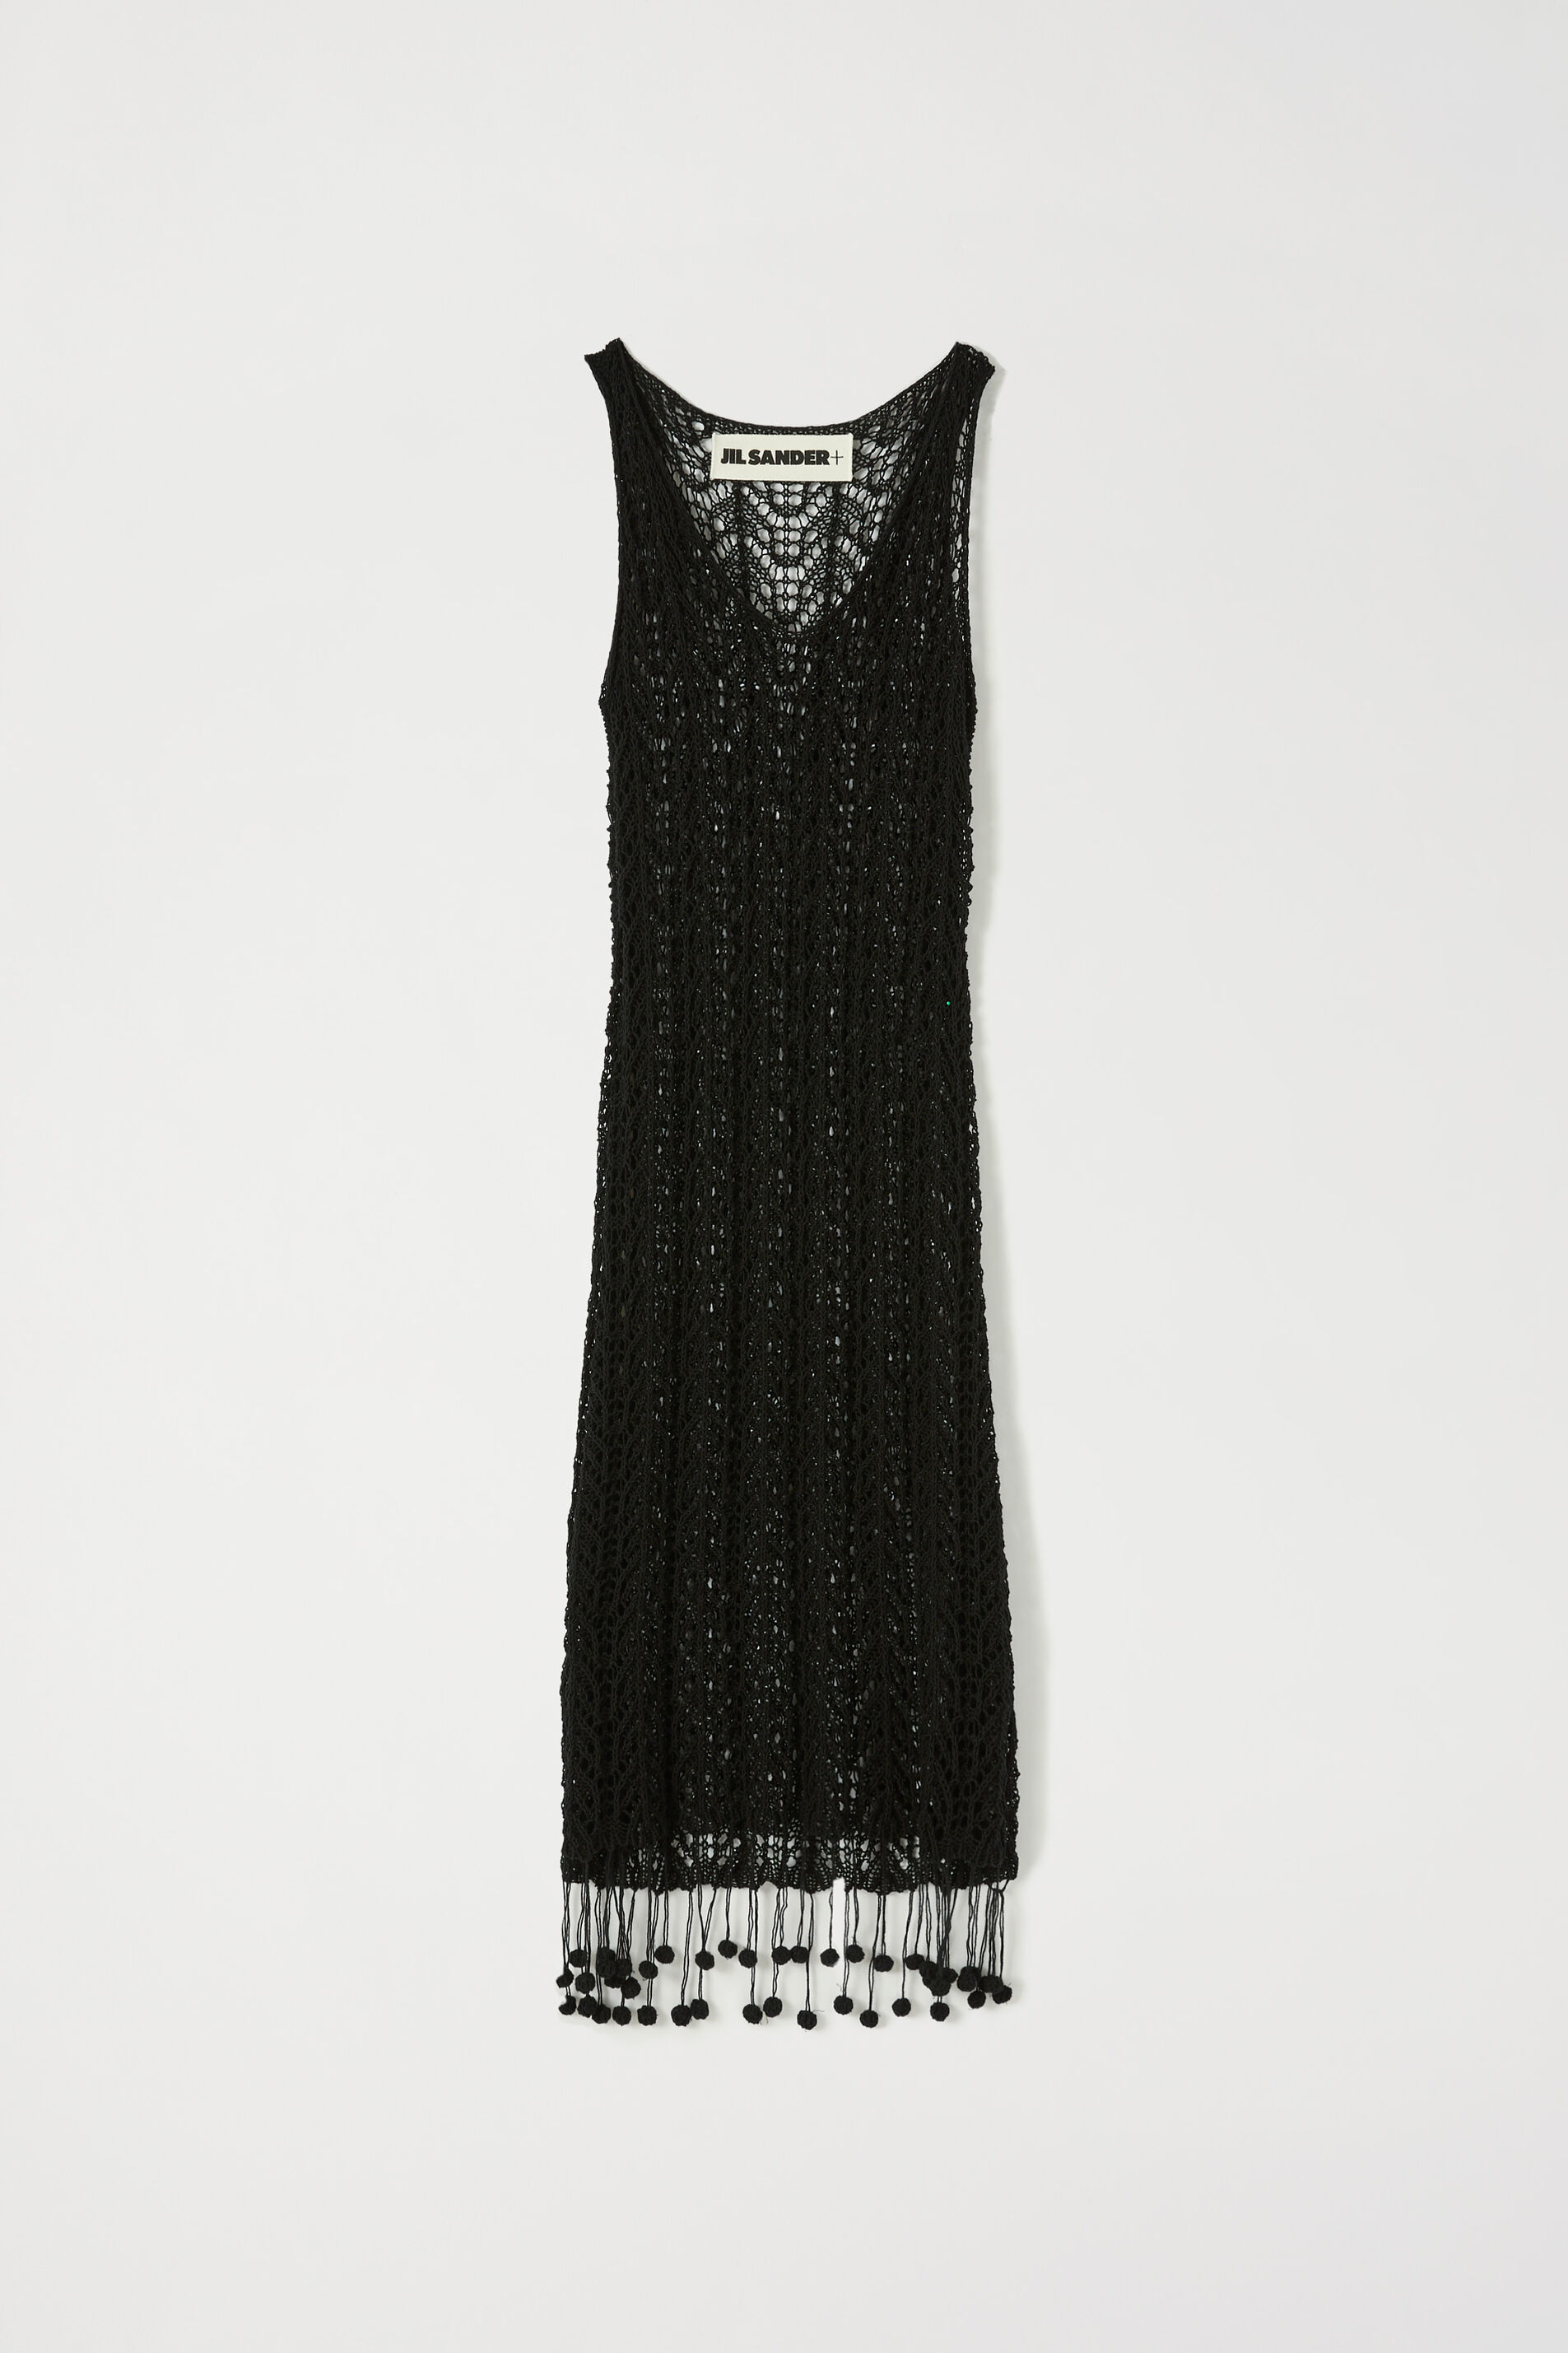 Crochet Dress, black, large